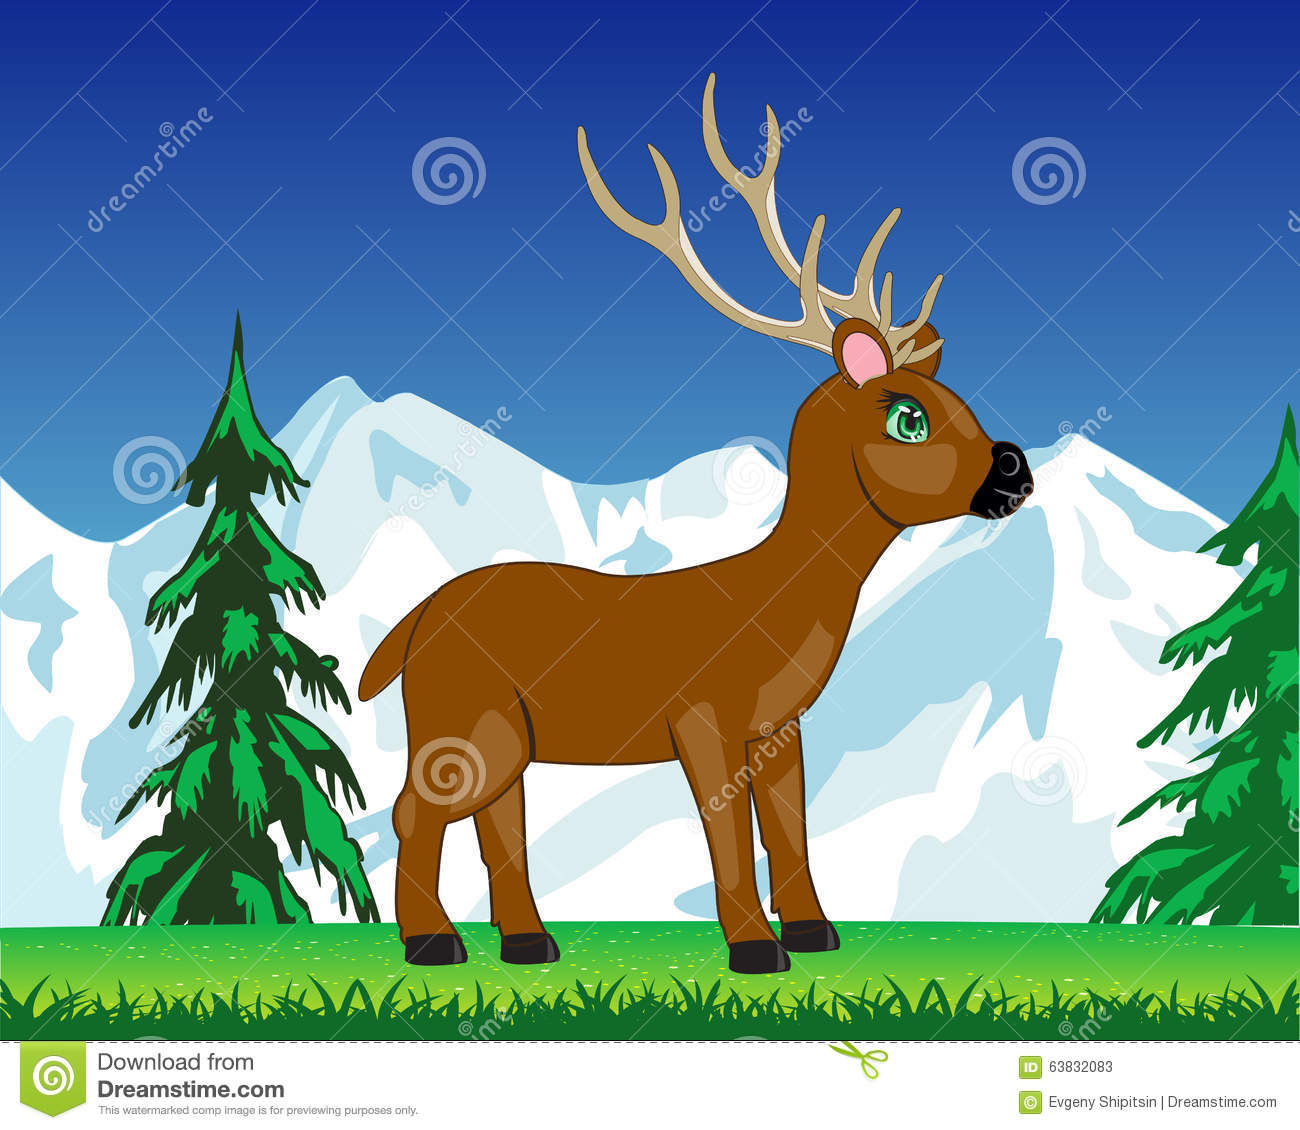 image Mr deer mountain spunk